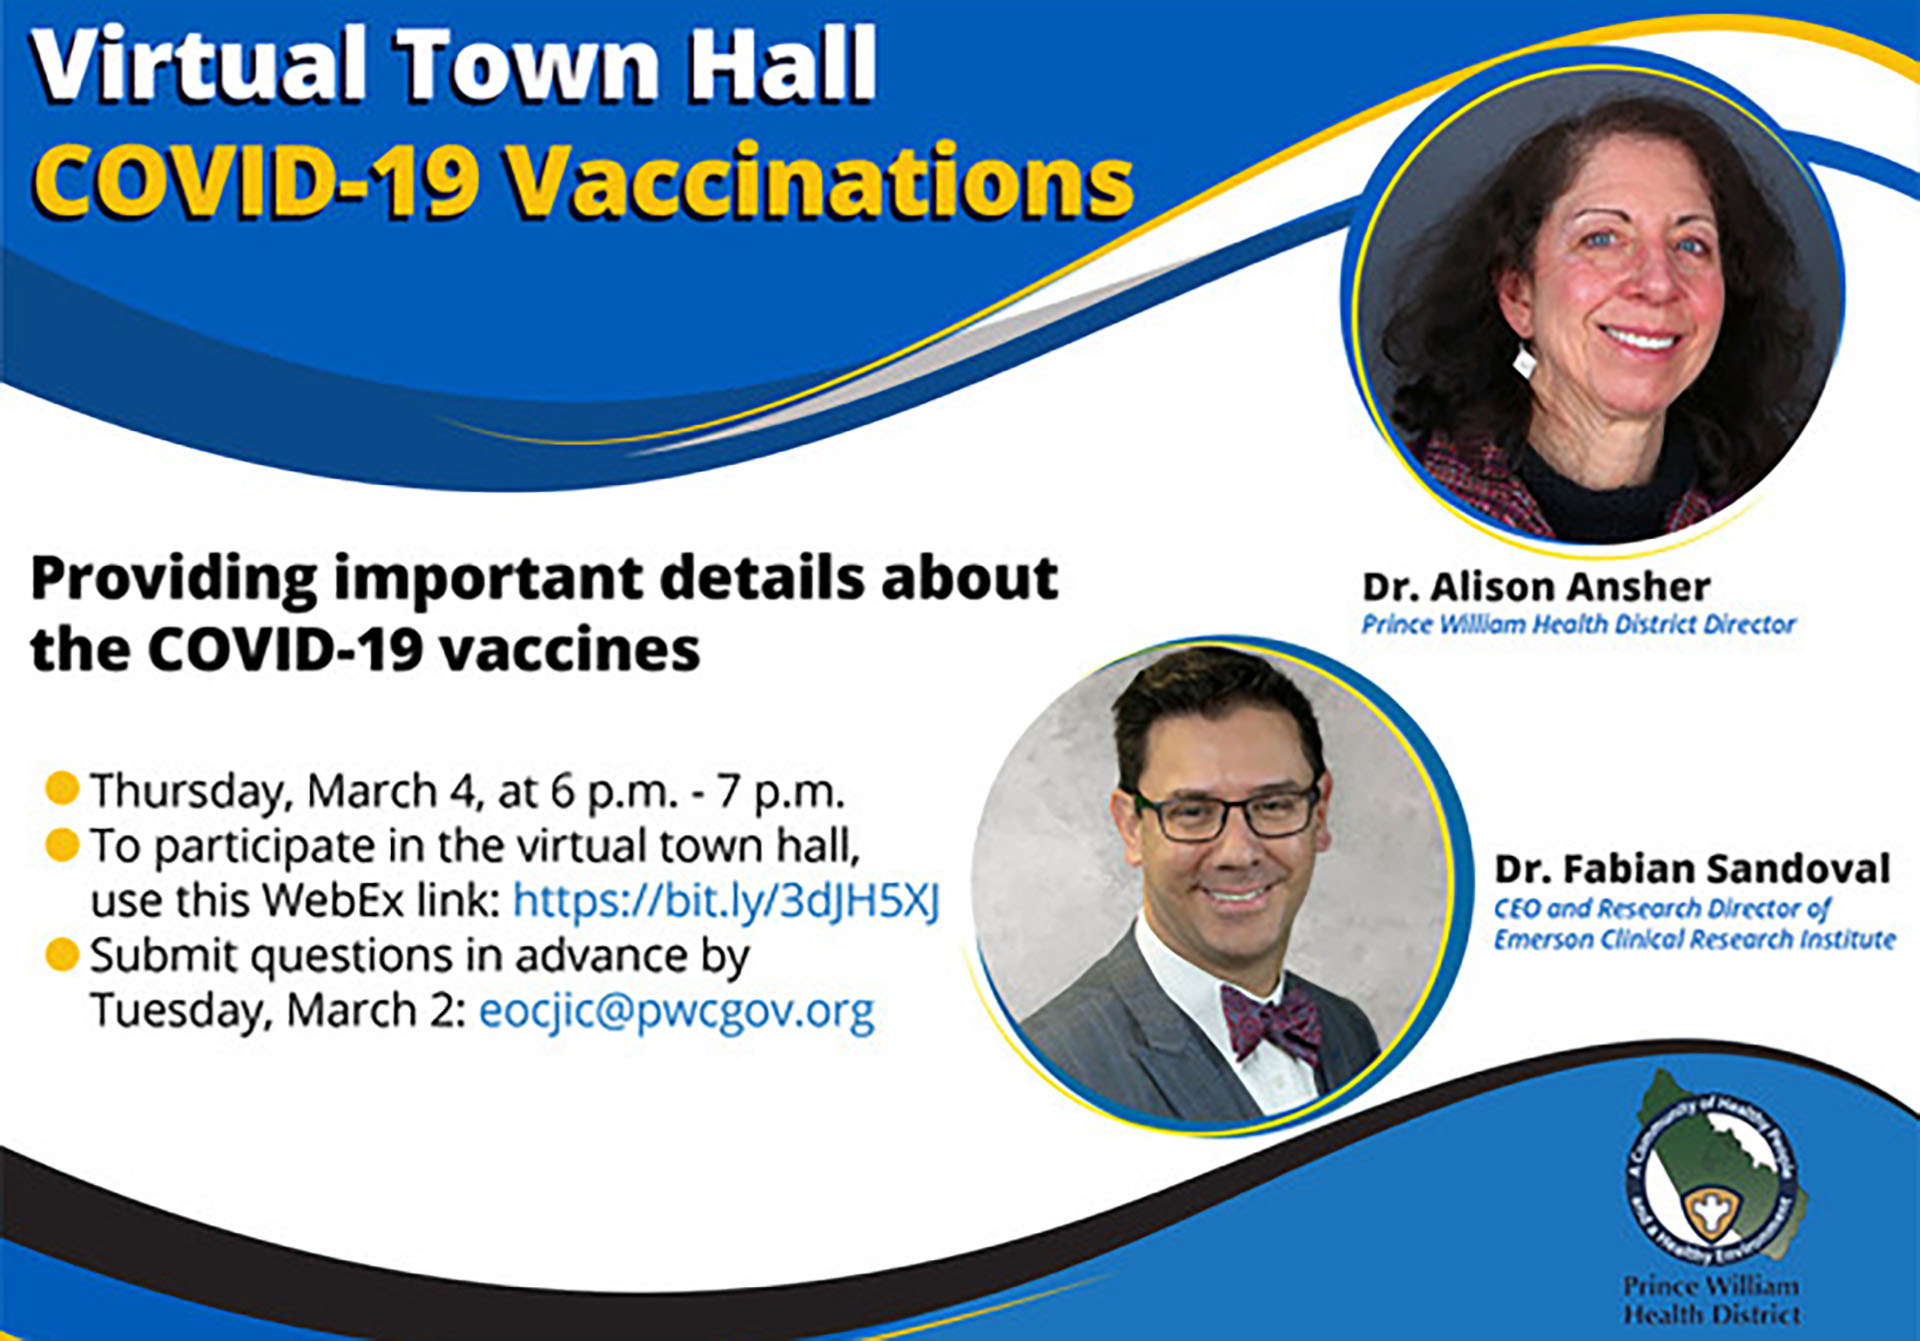 COVID-19 Vaccination Town Hall occurring March 4